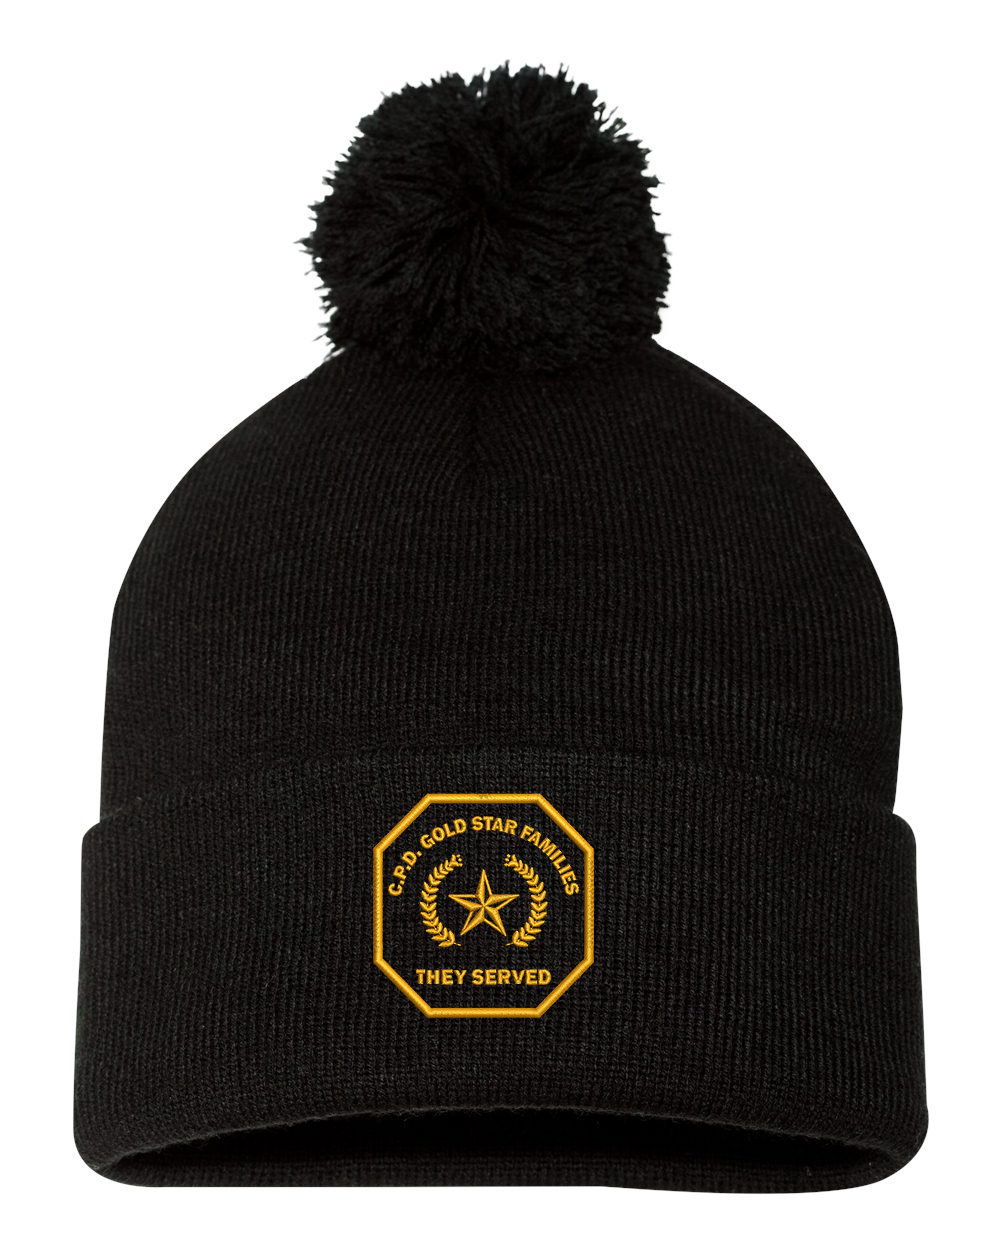 Gold Star Family Knit Cap with Pom and Cuff